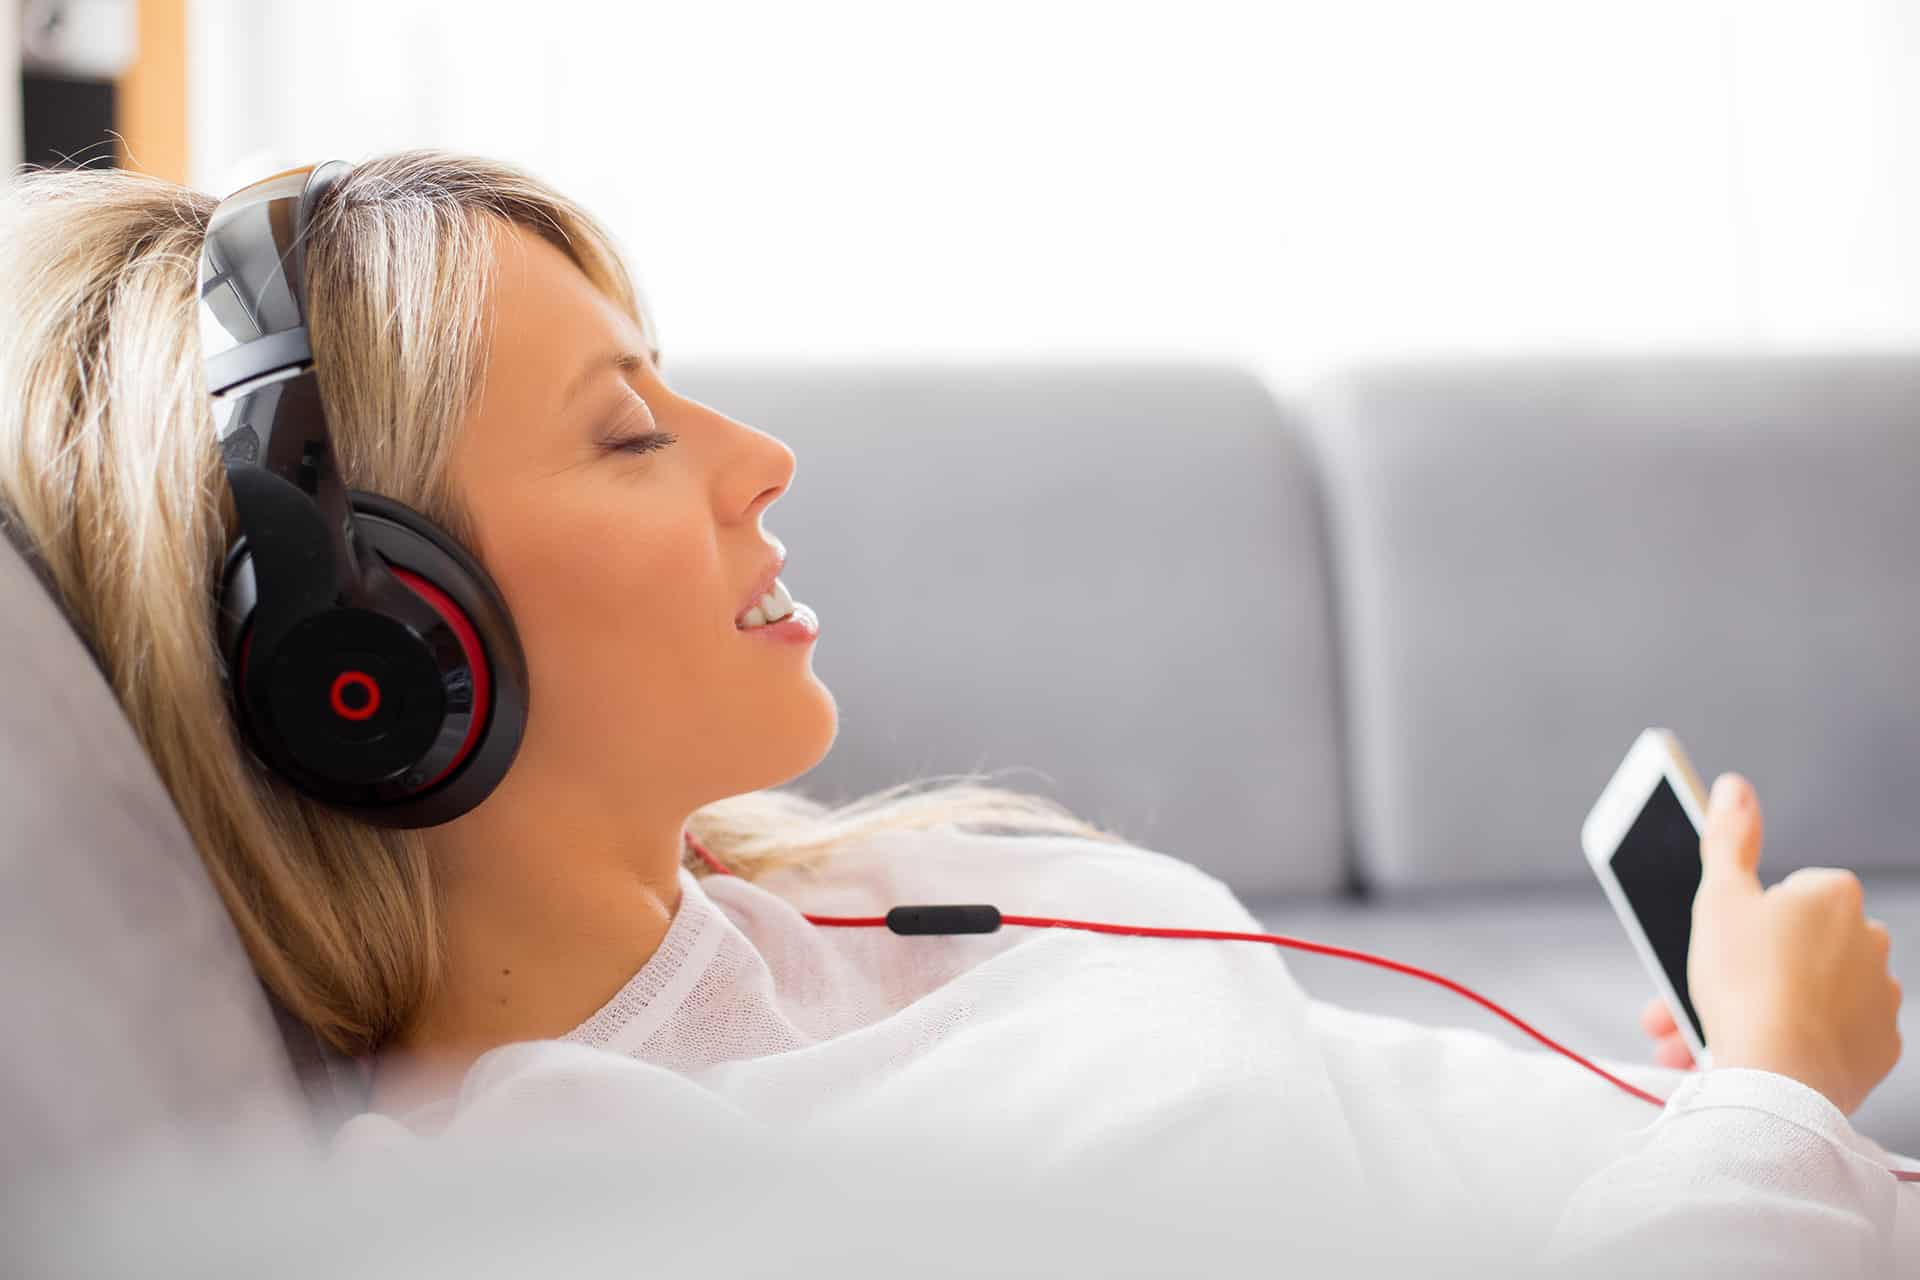 Sleep listening to music